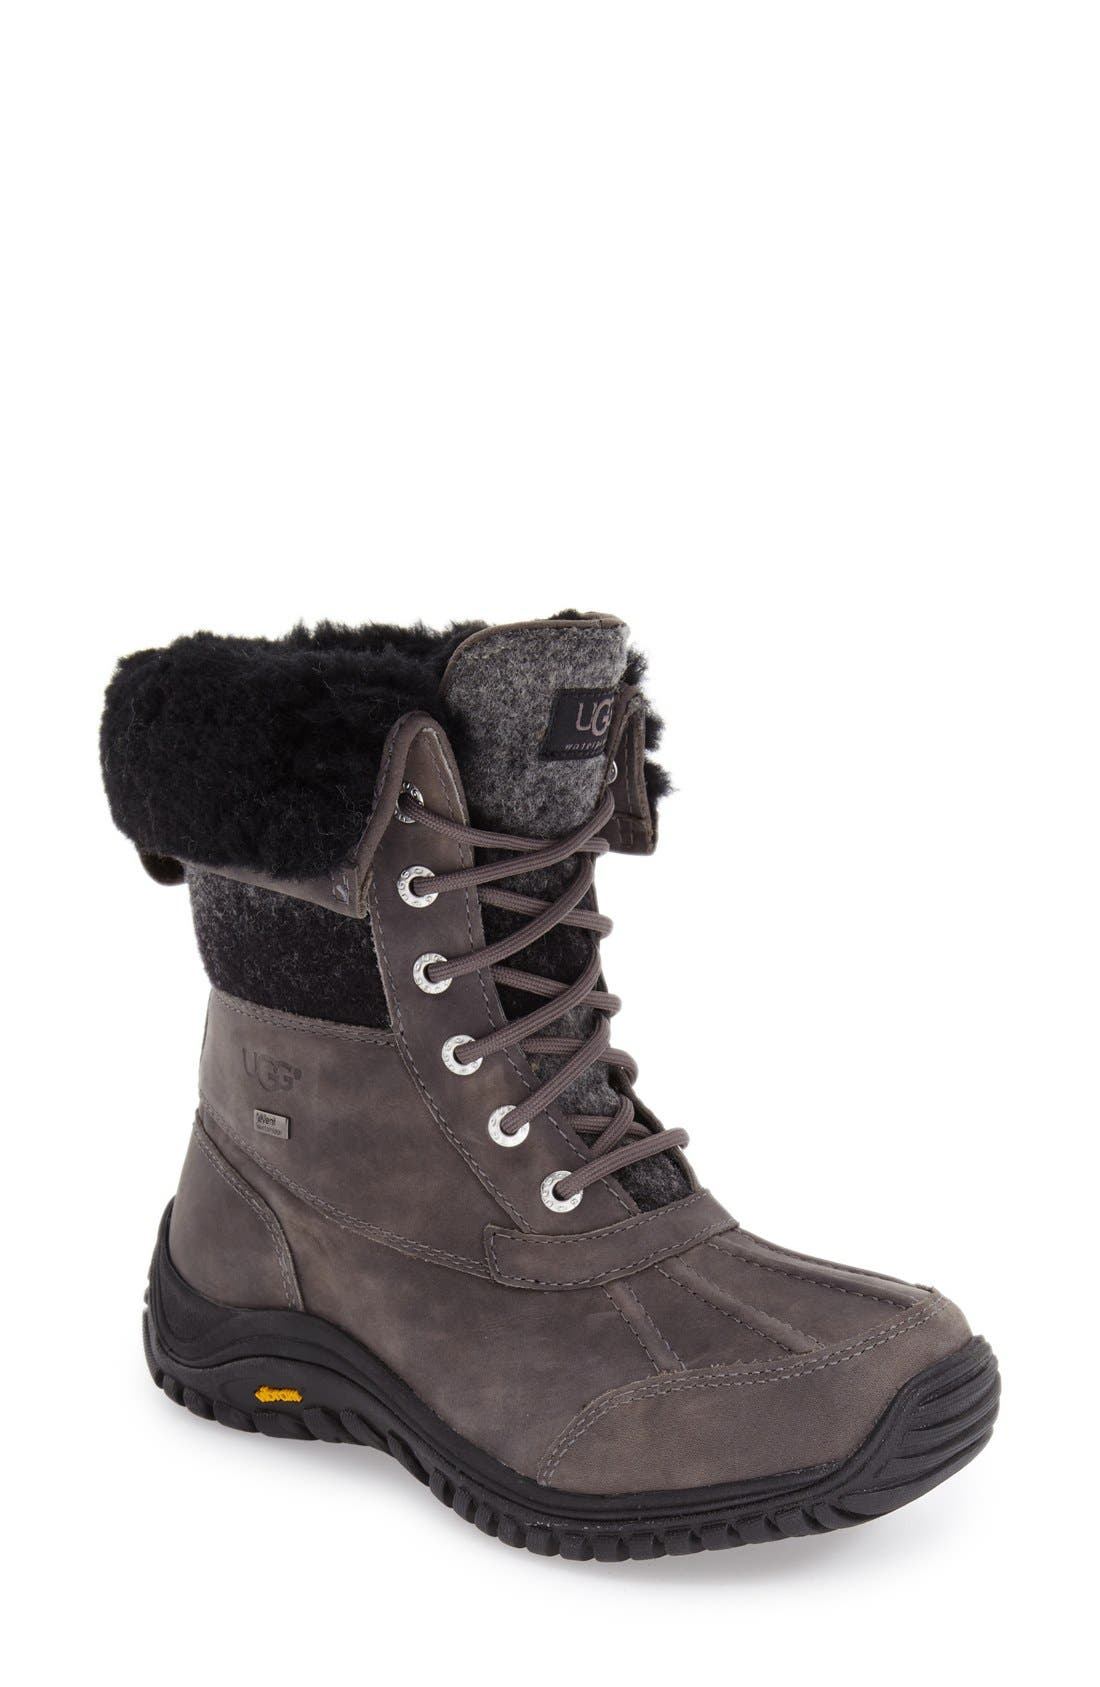 Alternate Image 1 Selected - UGG® Adirondack Waterproof Insulated Winter Boot (Women)